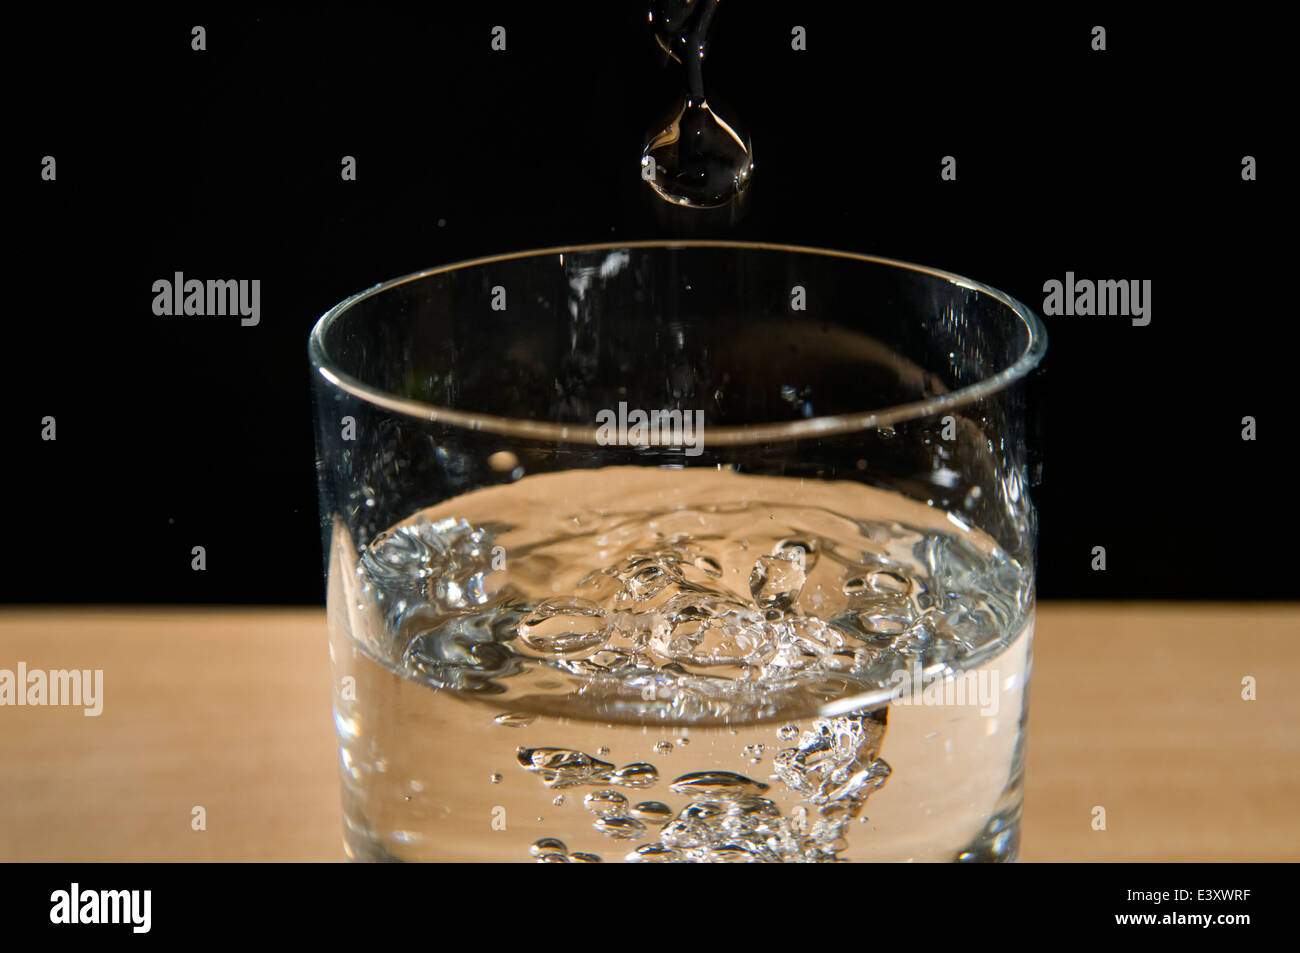 Water droplet in glass of fresh water against black background - Stock Image